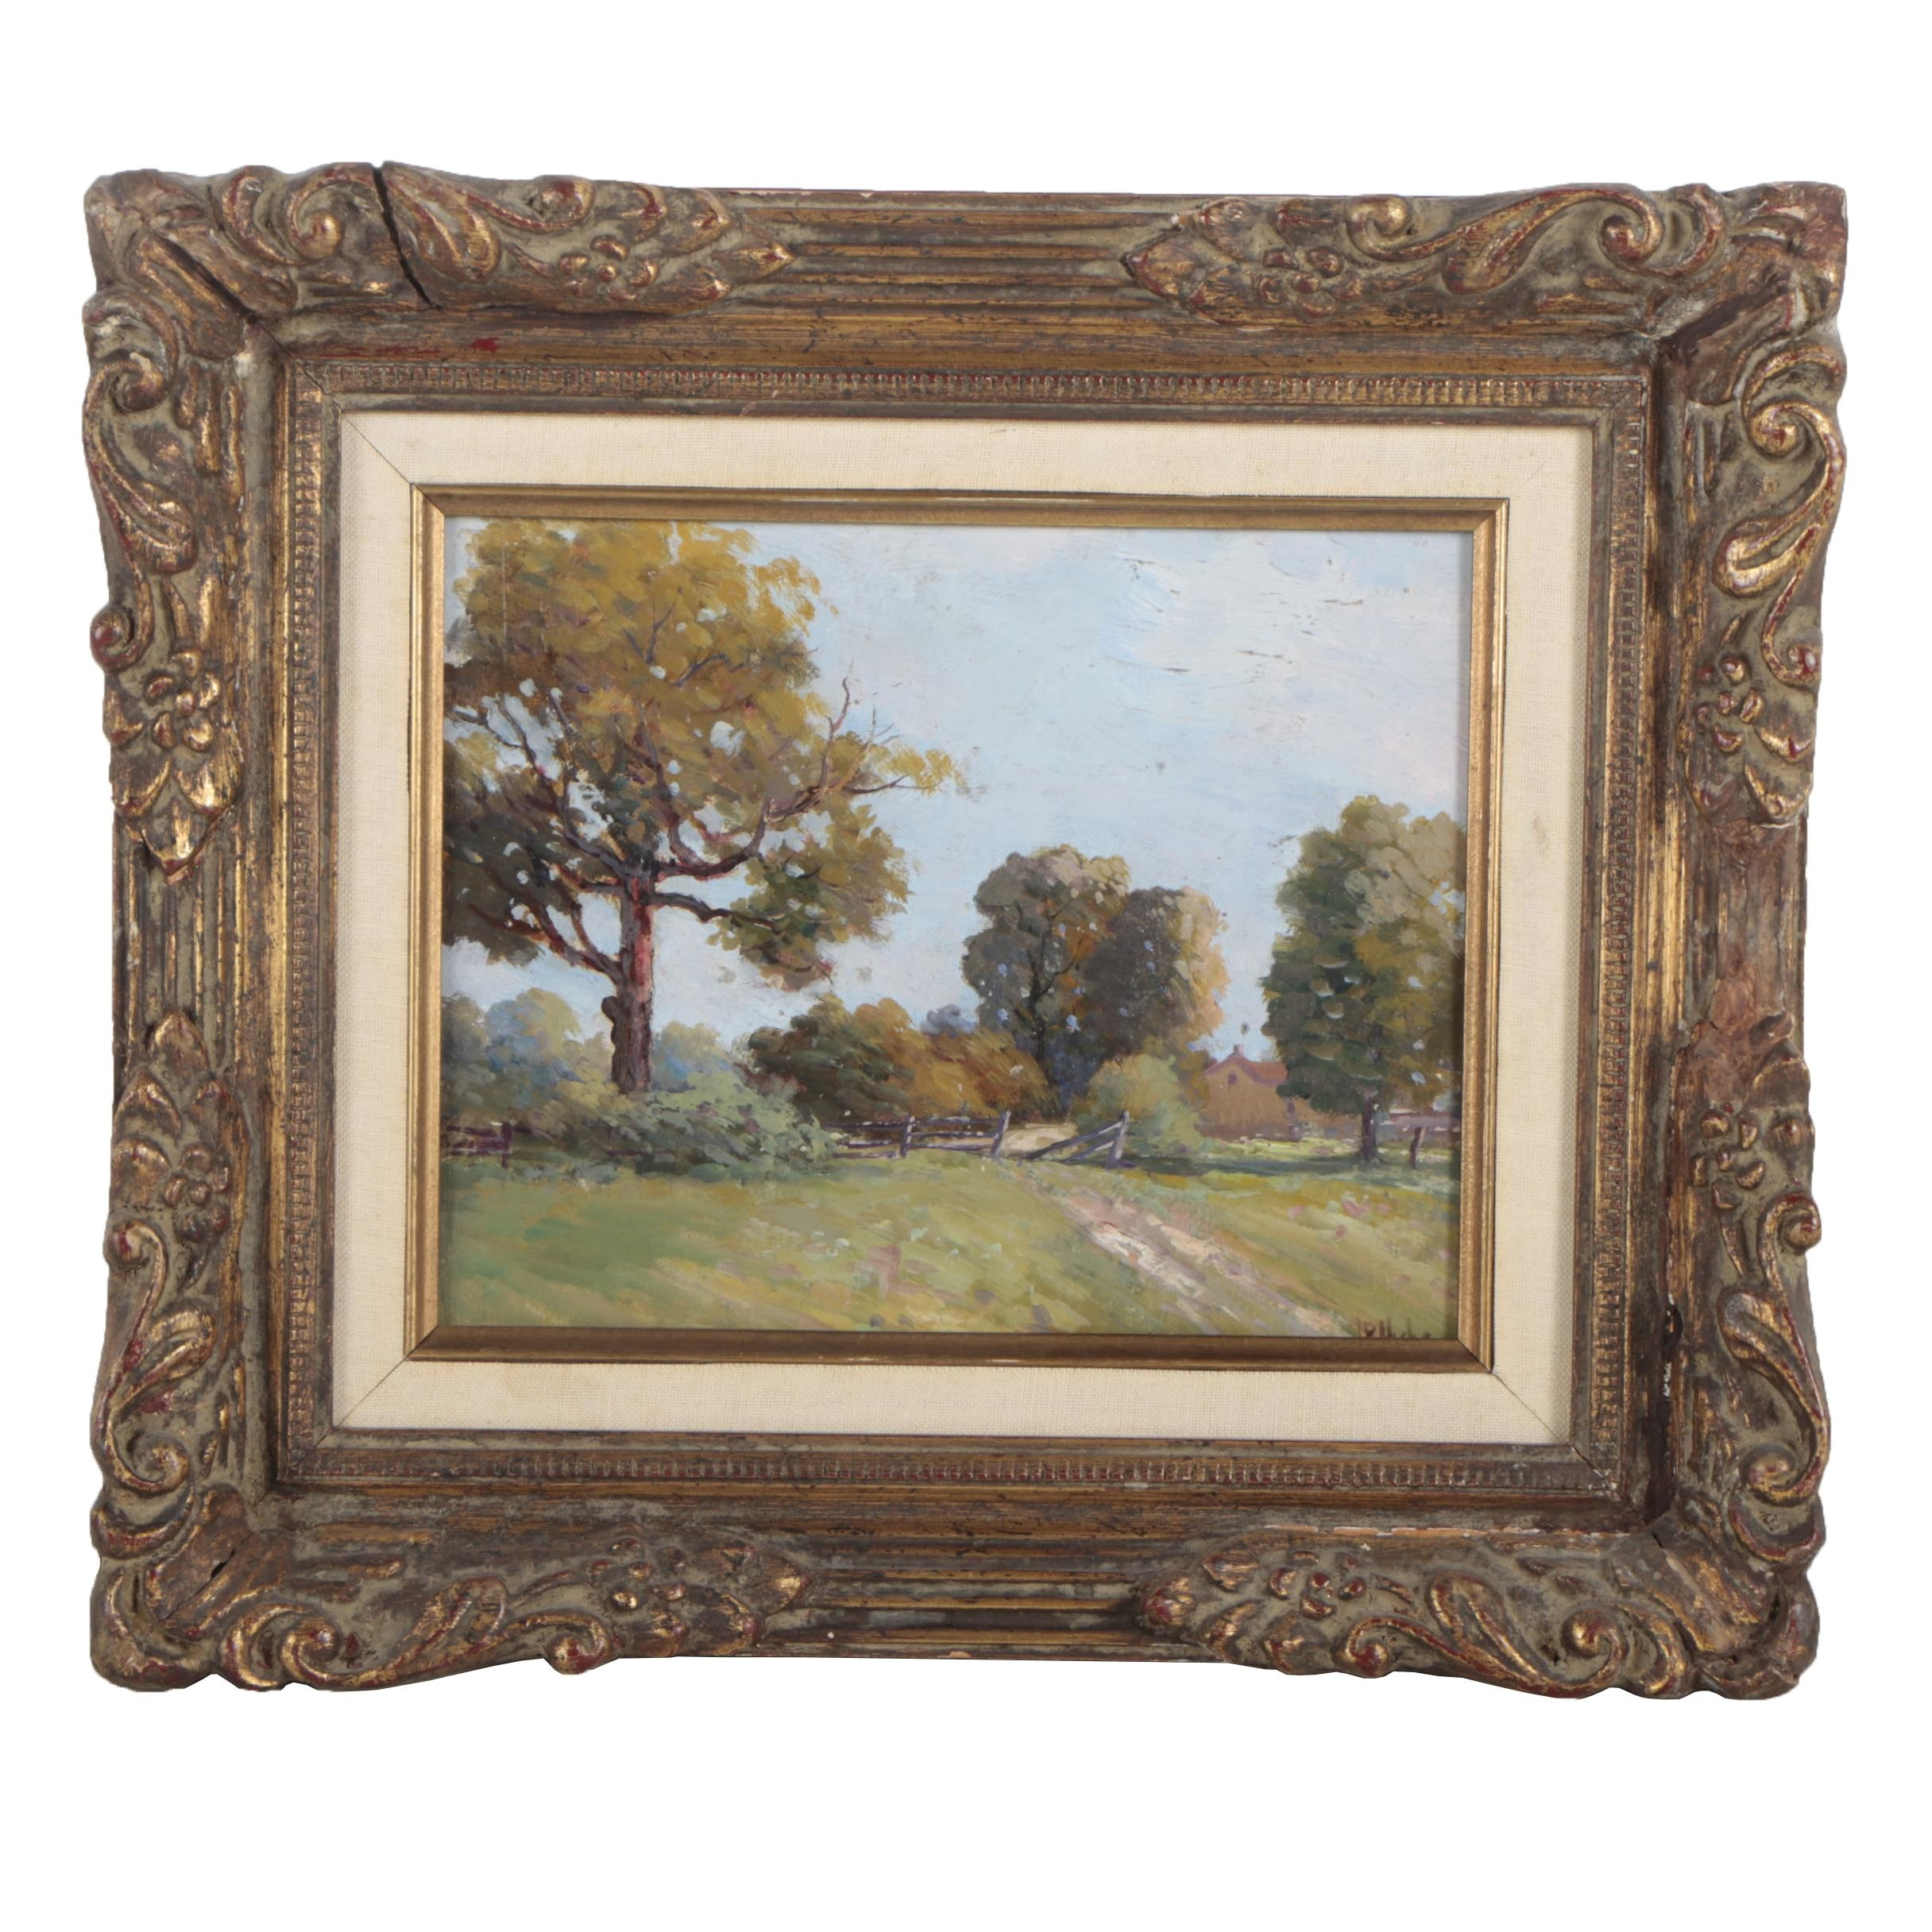 J.P. Hicks Vintage Landscape Oil Painting